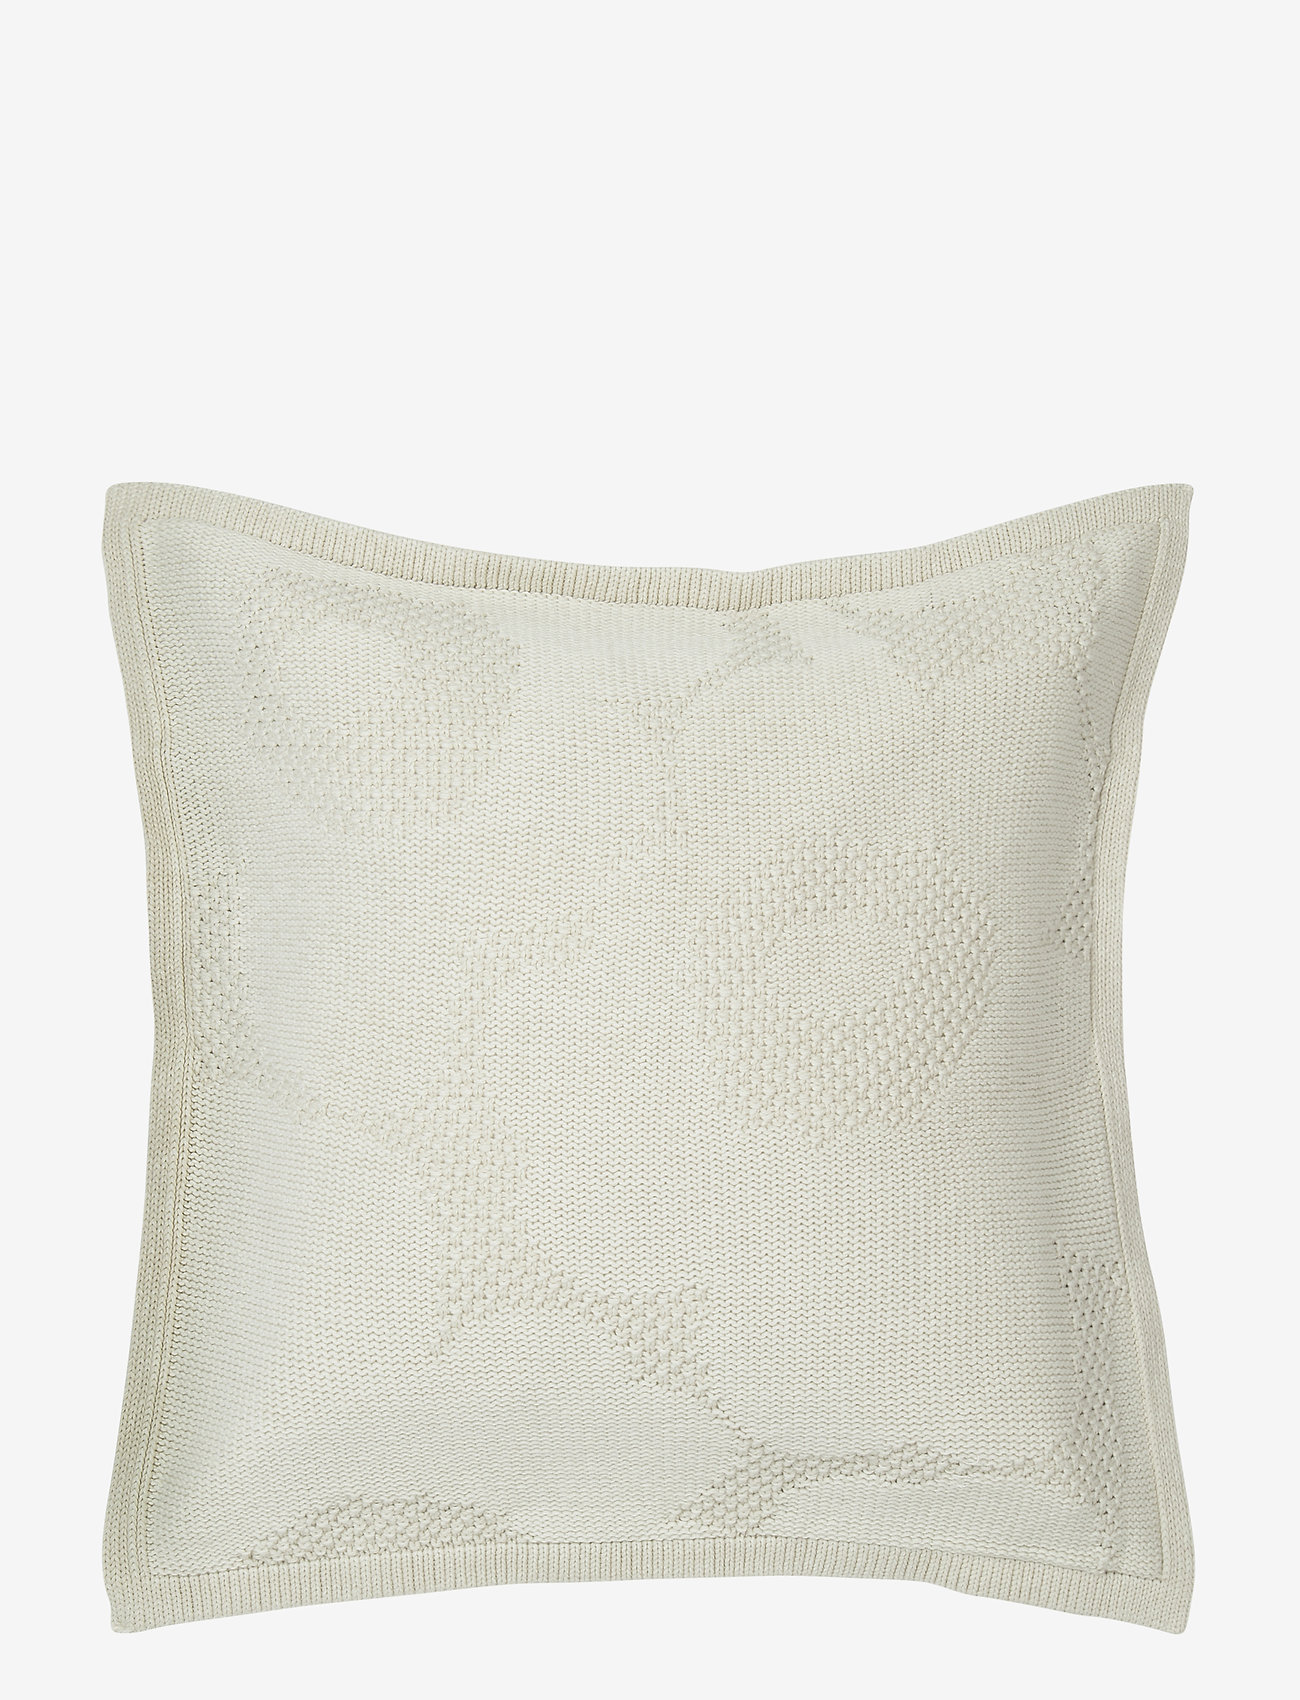 unikko knitted cushion cover